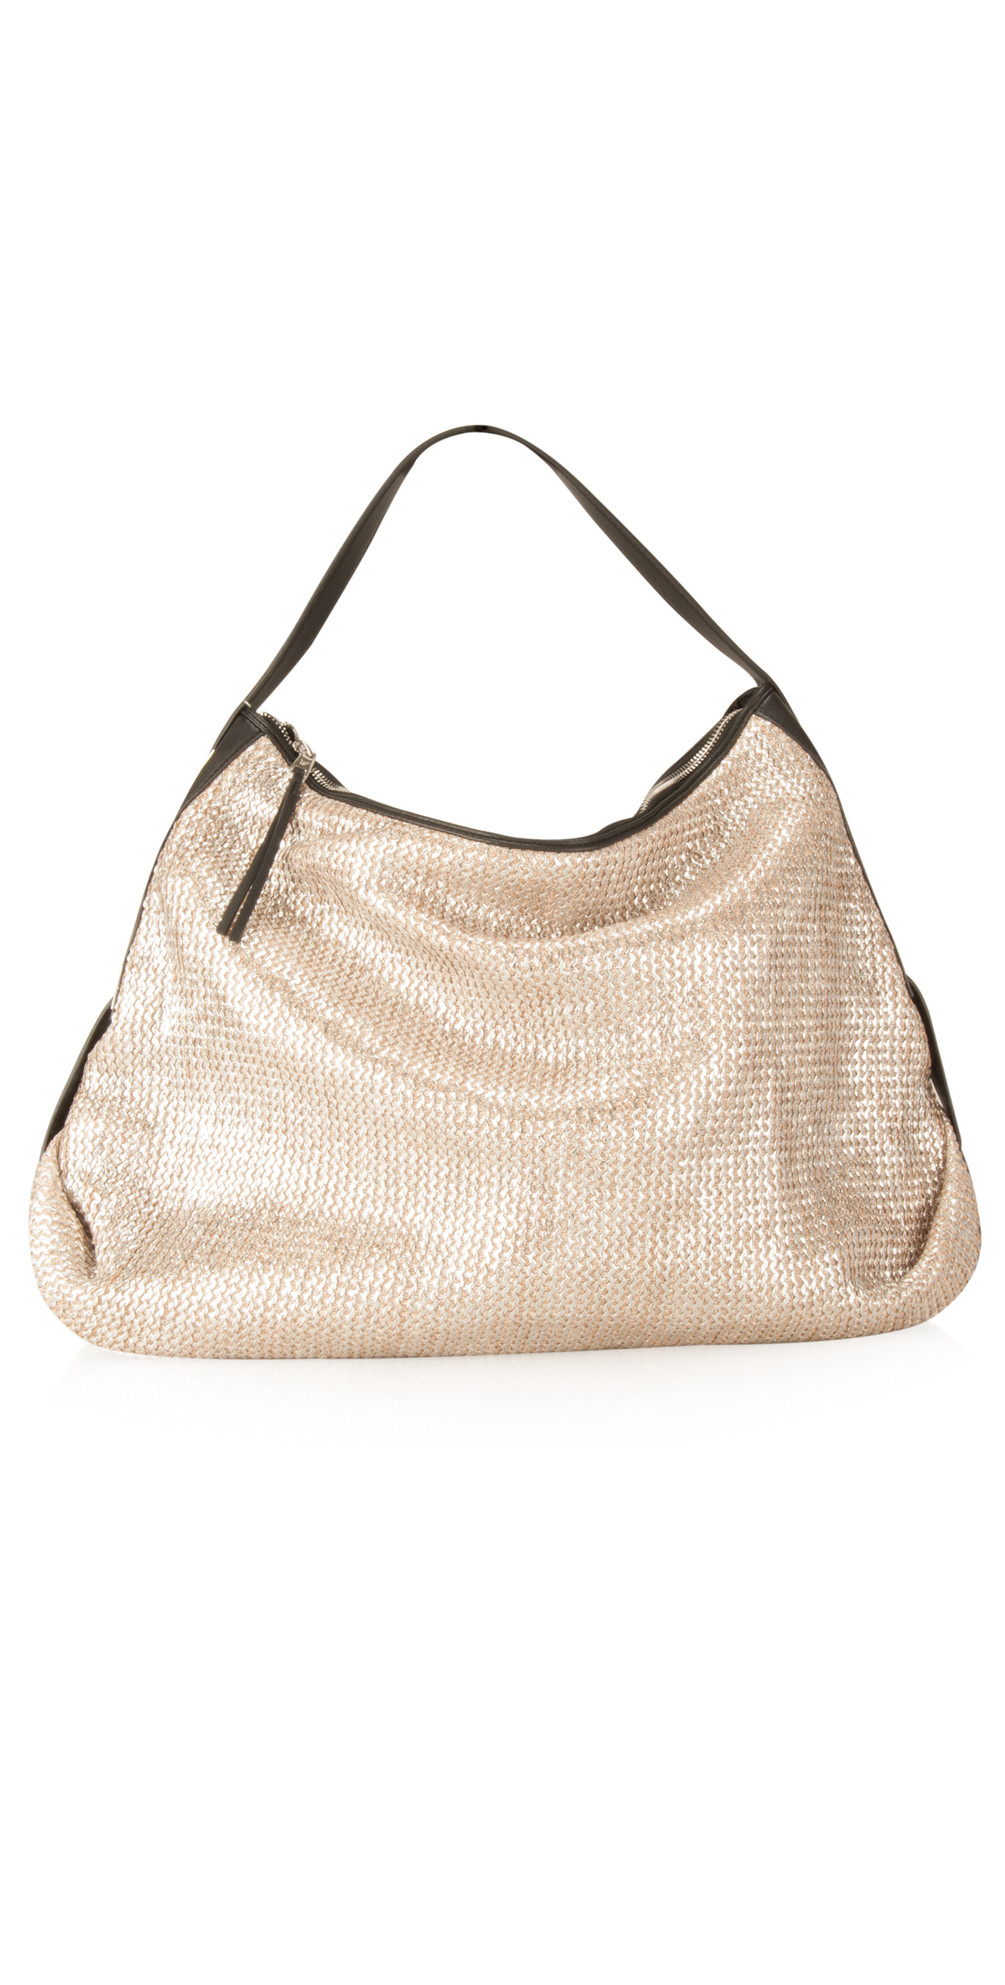 French Connection Florence Woven Hobo Bag in Silver 3fc8513b69f21